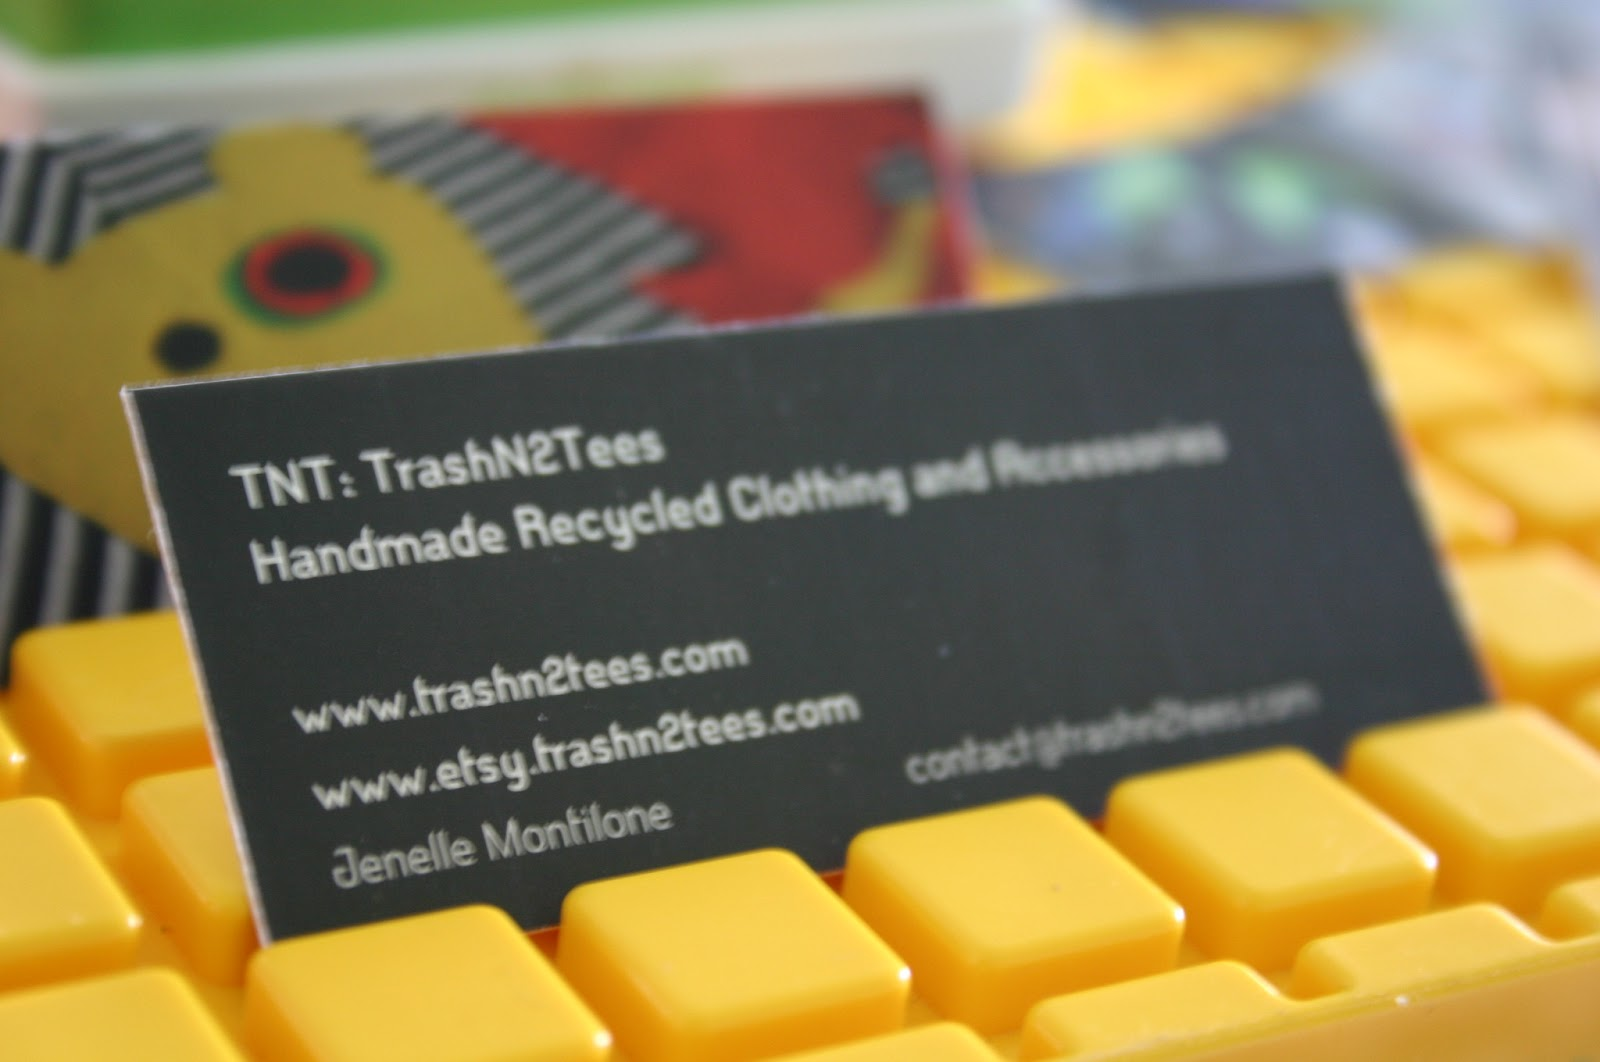 Business card review whats moo handmadeology what do i love most about my moo cards i can share a variety of items in the palm of my hand being able to actually show people what trashn2tees is all reheart Images